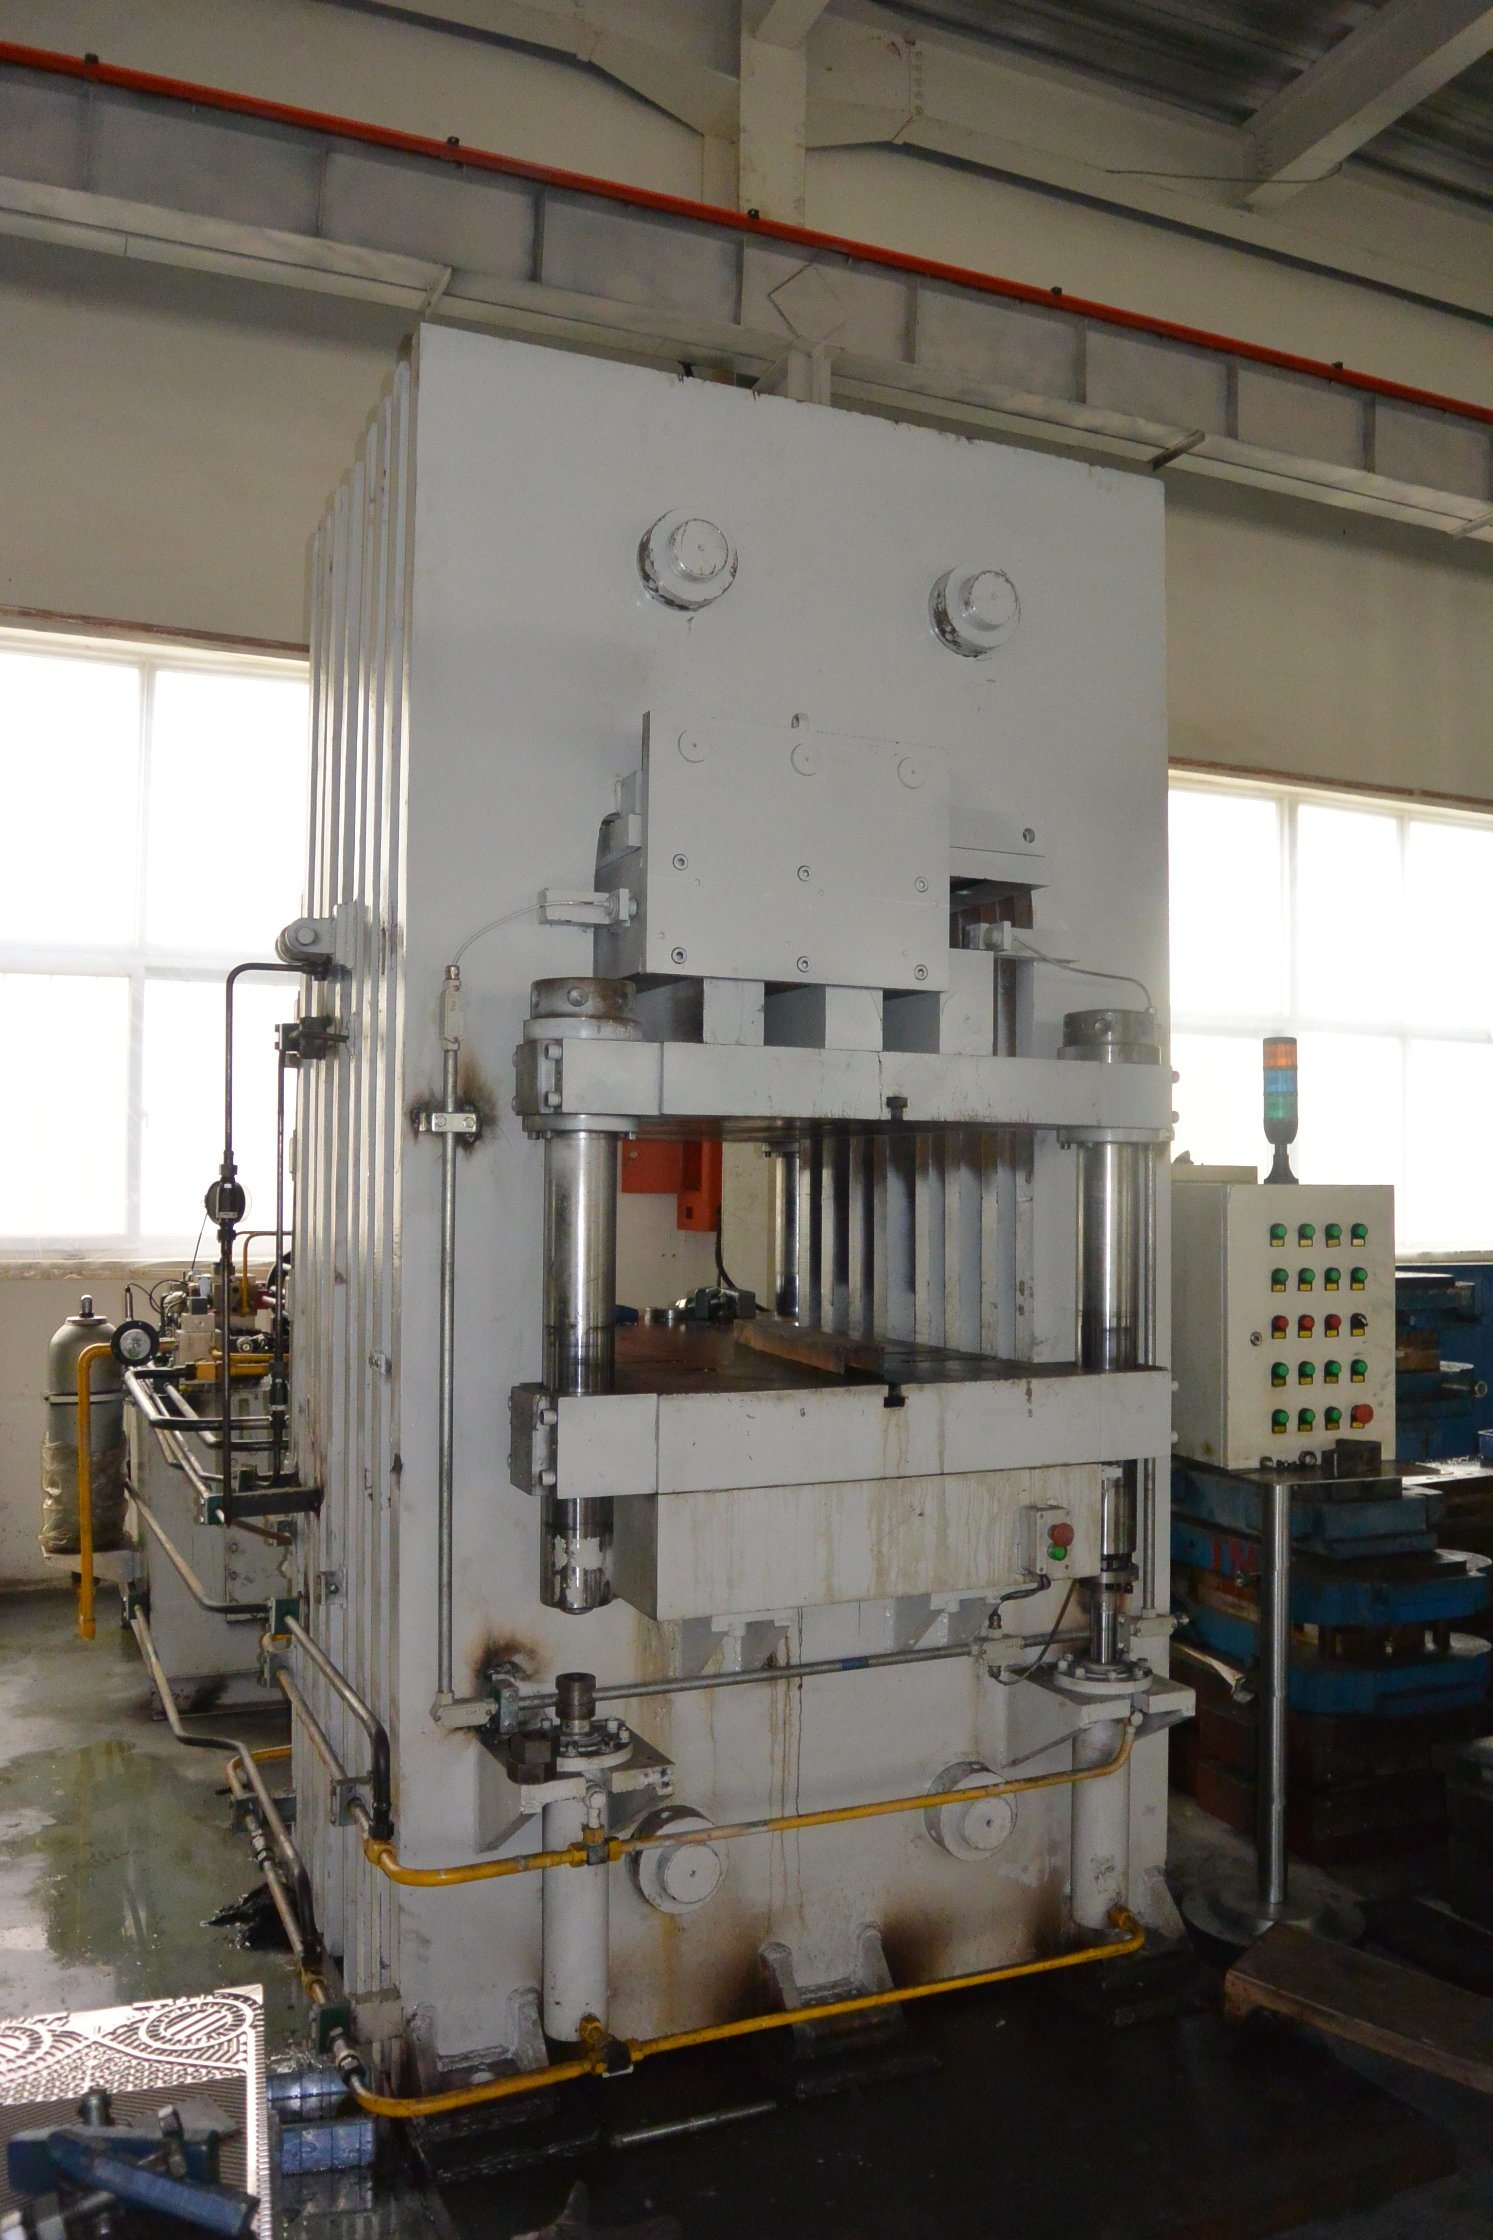 3000t Hydraulic Press for Metal Plates Stamping/Forming-Energy Saving Type